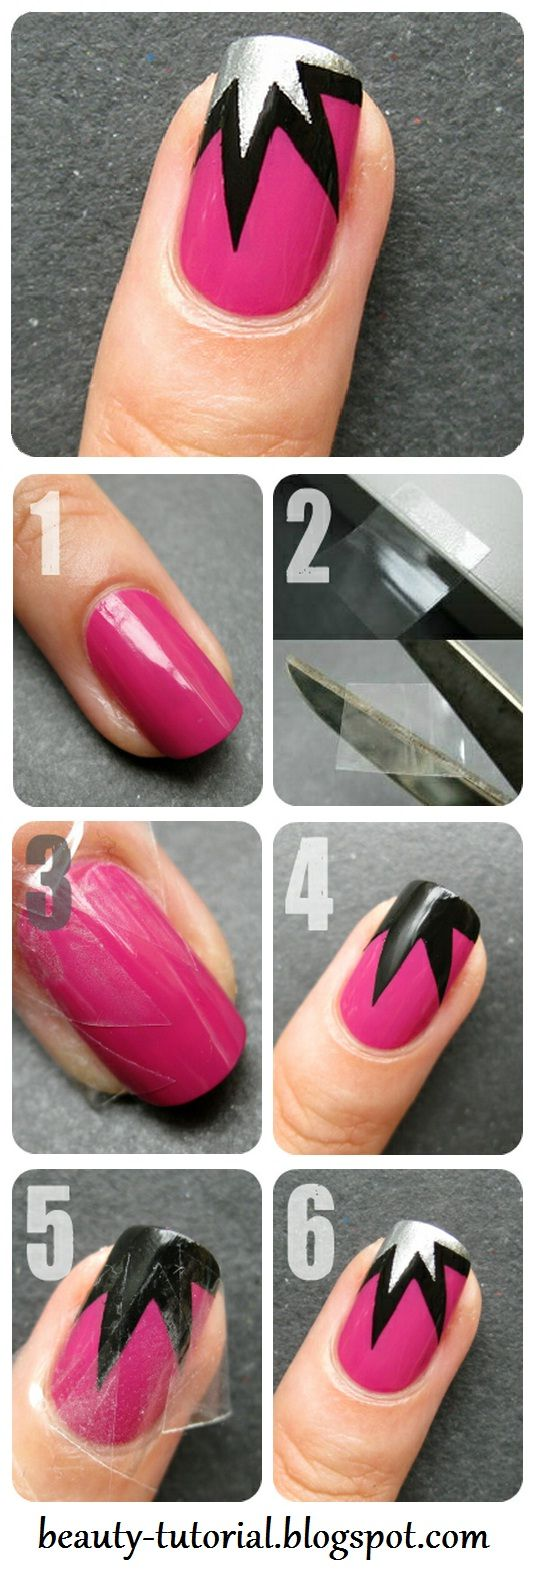 Explosion Nail Art Design Tape Manicure Tutorial - Nadyana Magazine